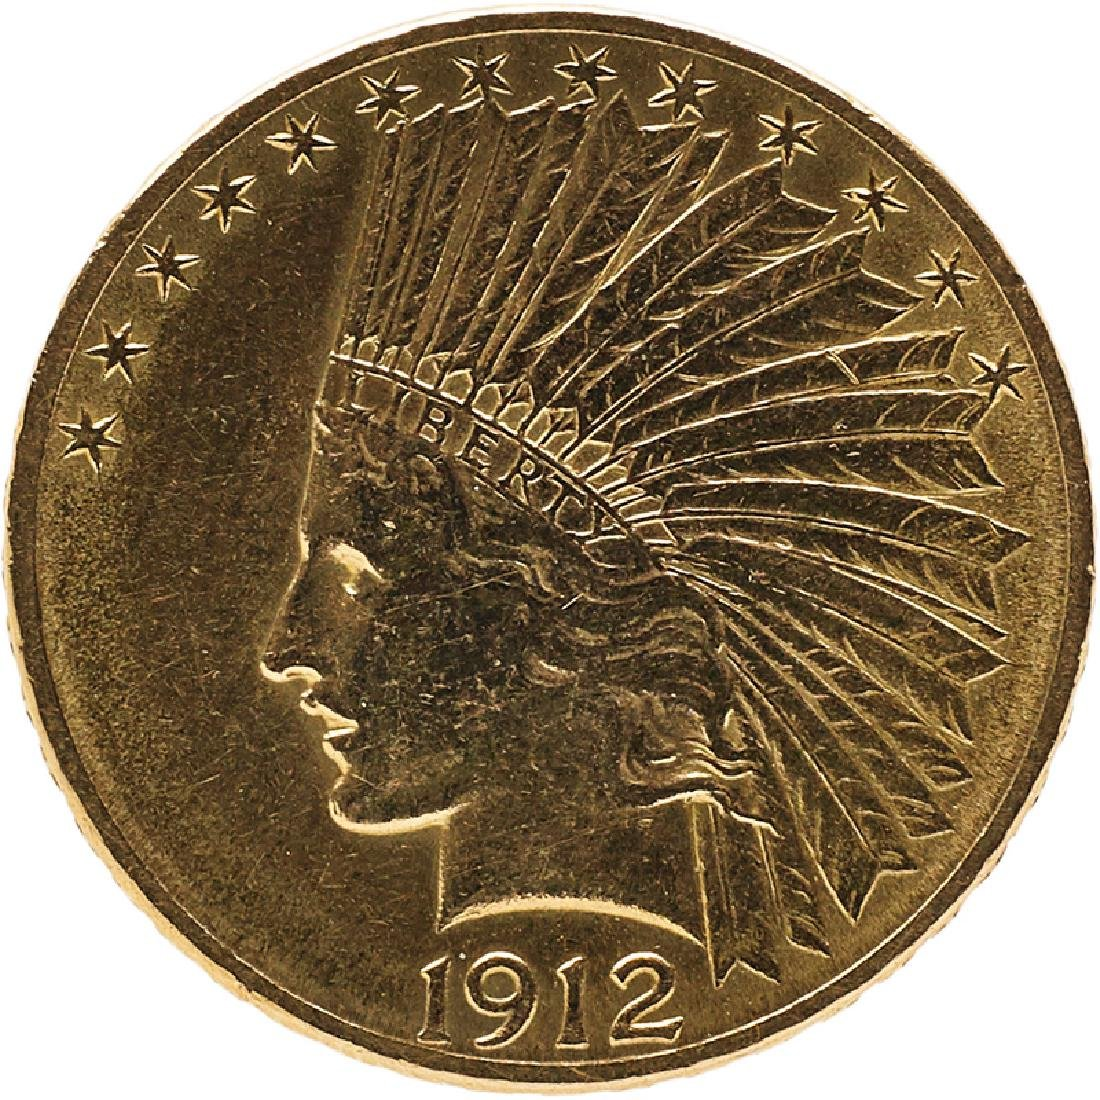 U.S. 1912 INDIAN $10 GOLD COIN